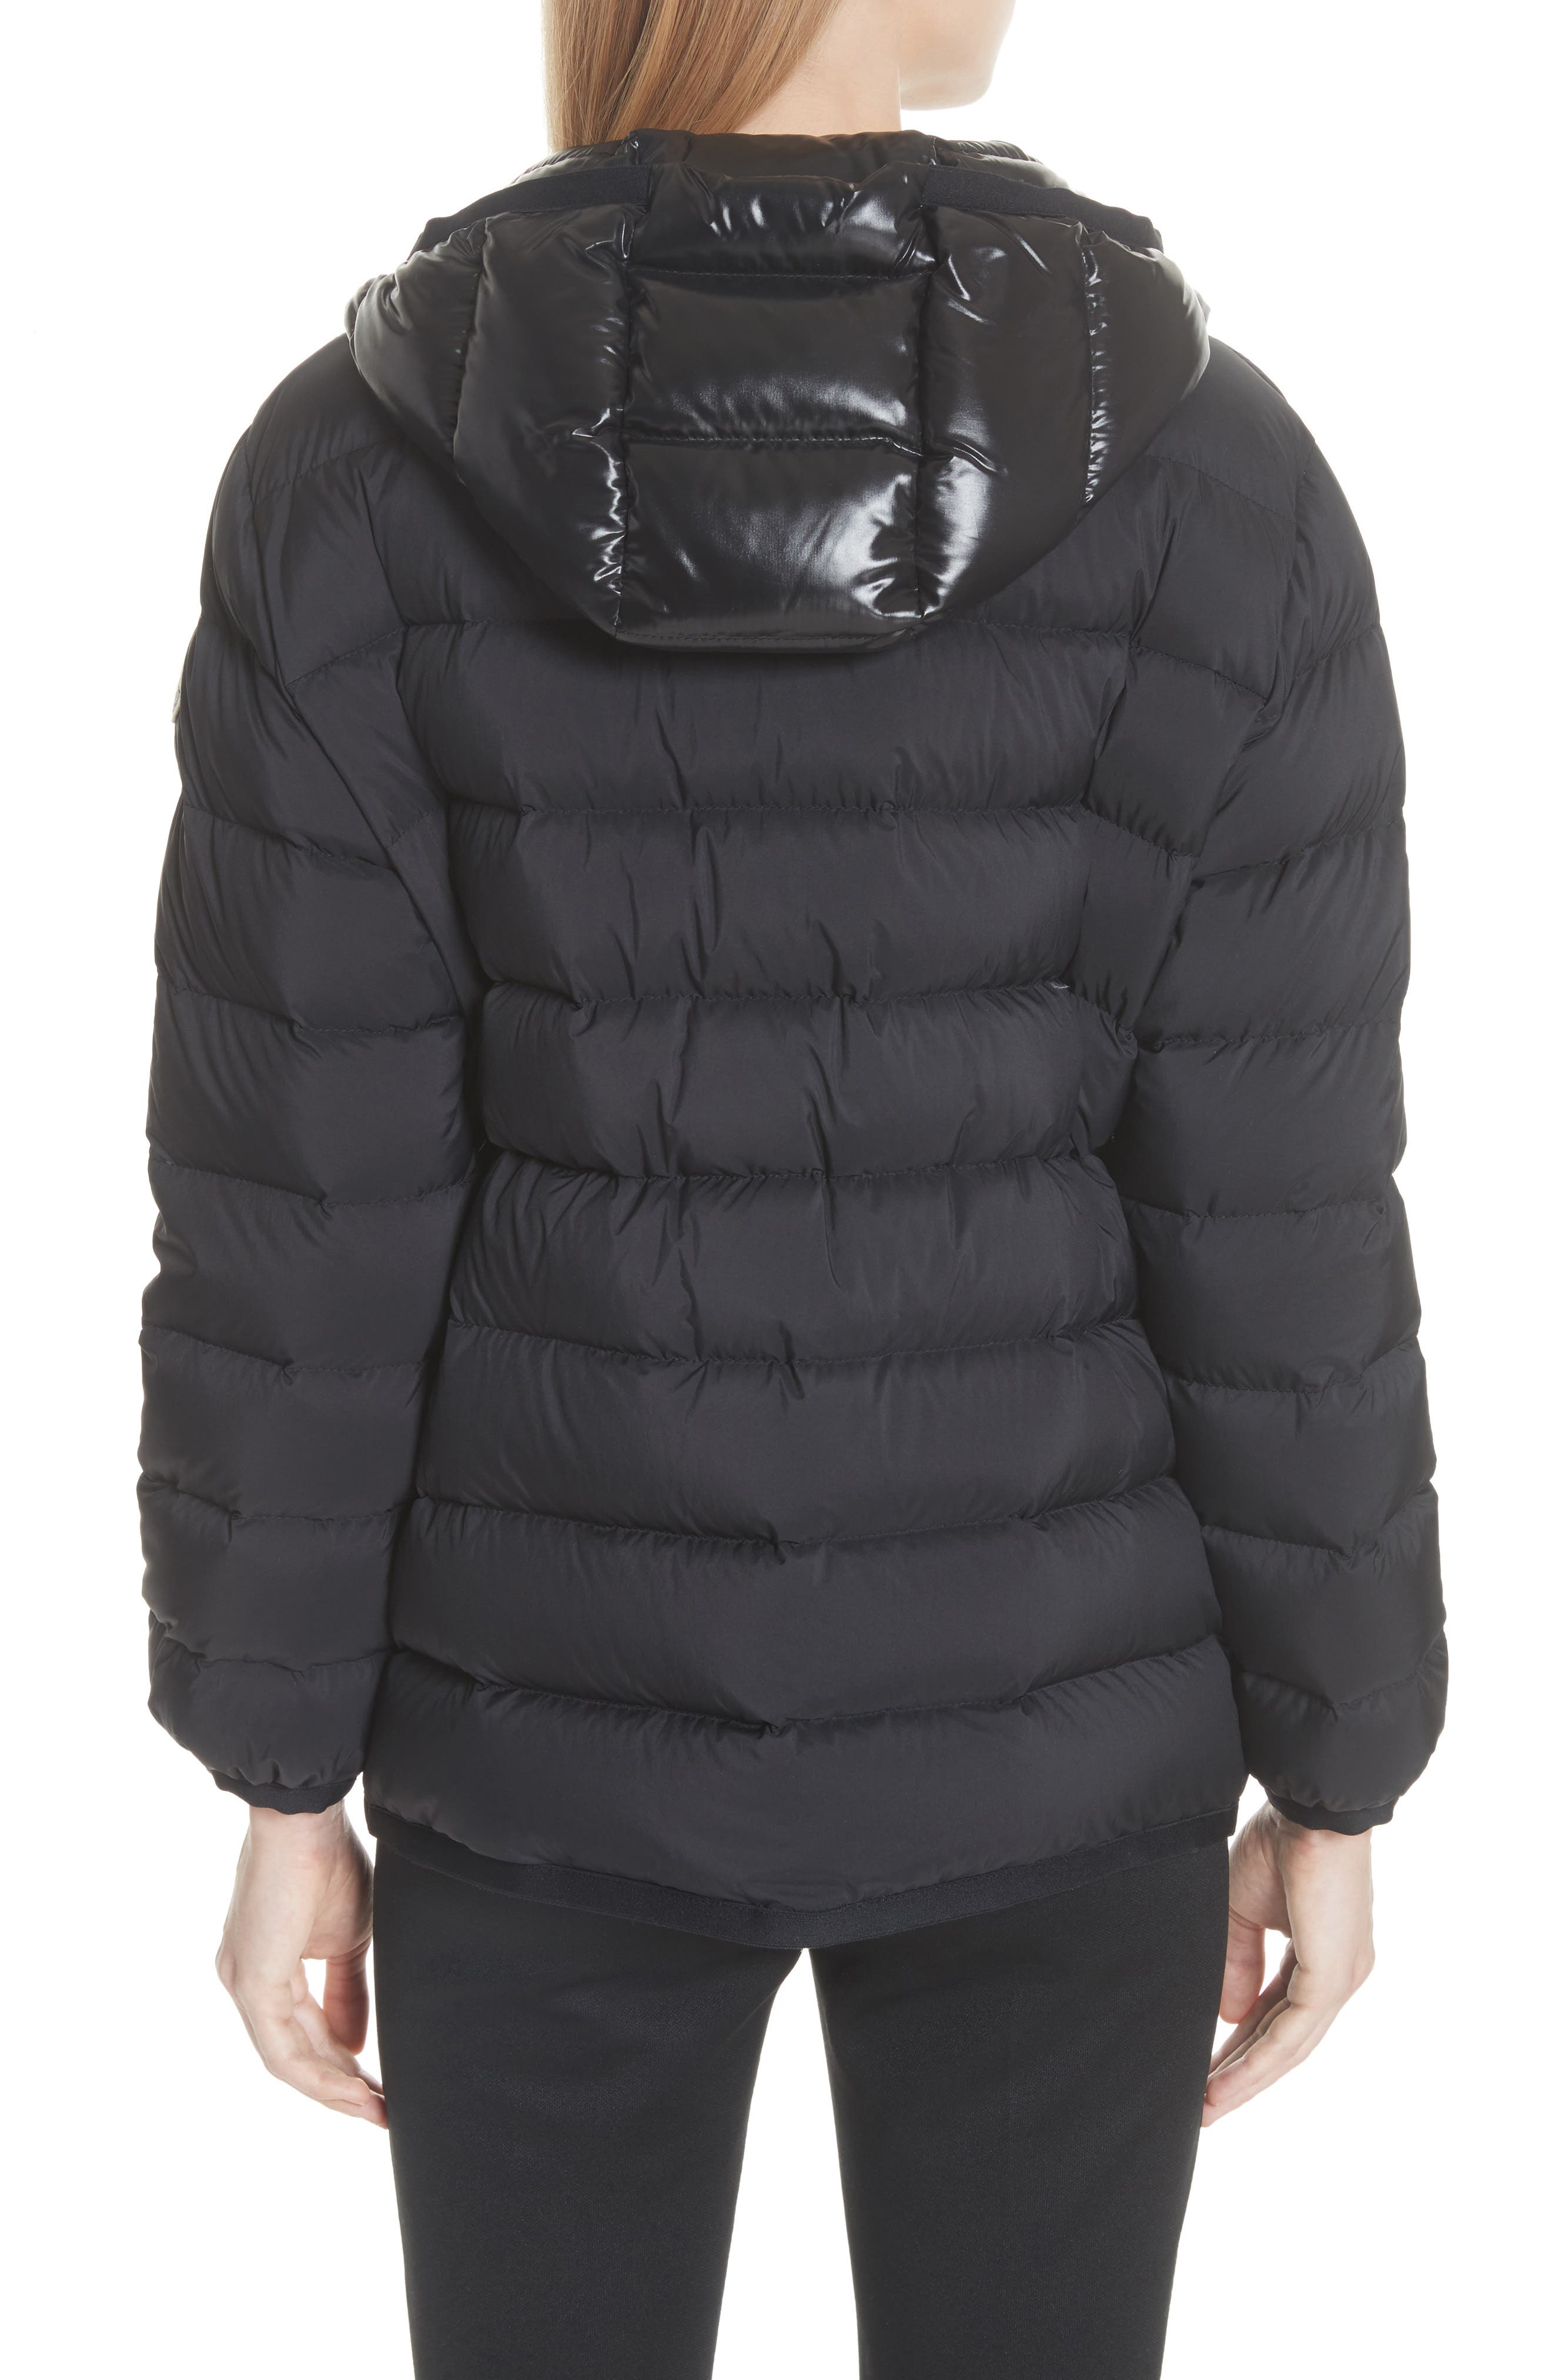 MONCLER, Goeland Quilted Down Jacket, Alternate thumbnail 3, color, 001